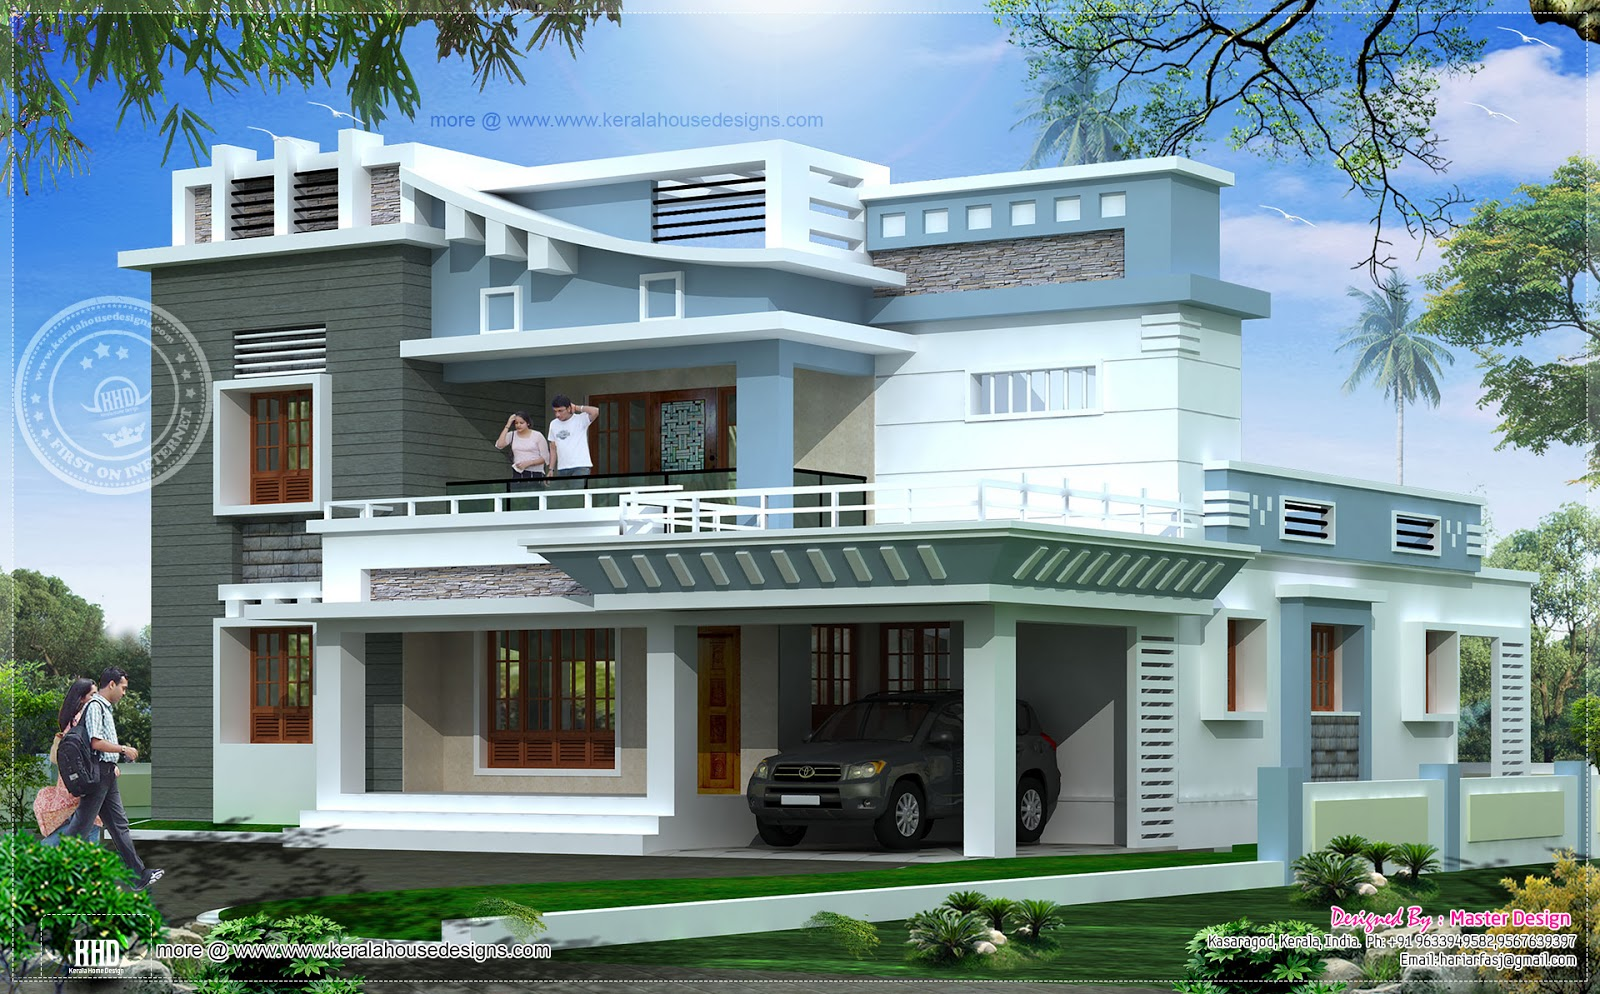 2547 square feet exterior home elevation house design plans for Design the exterior of your home